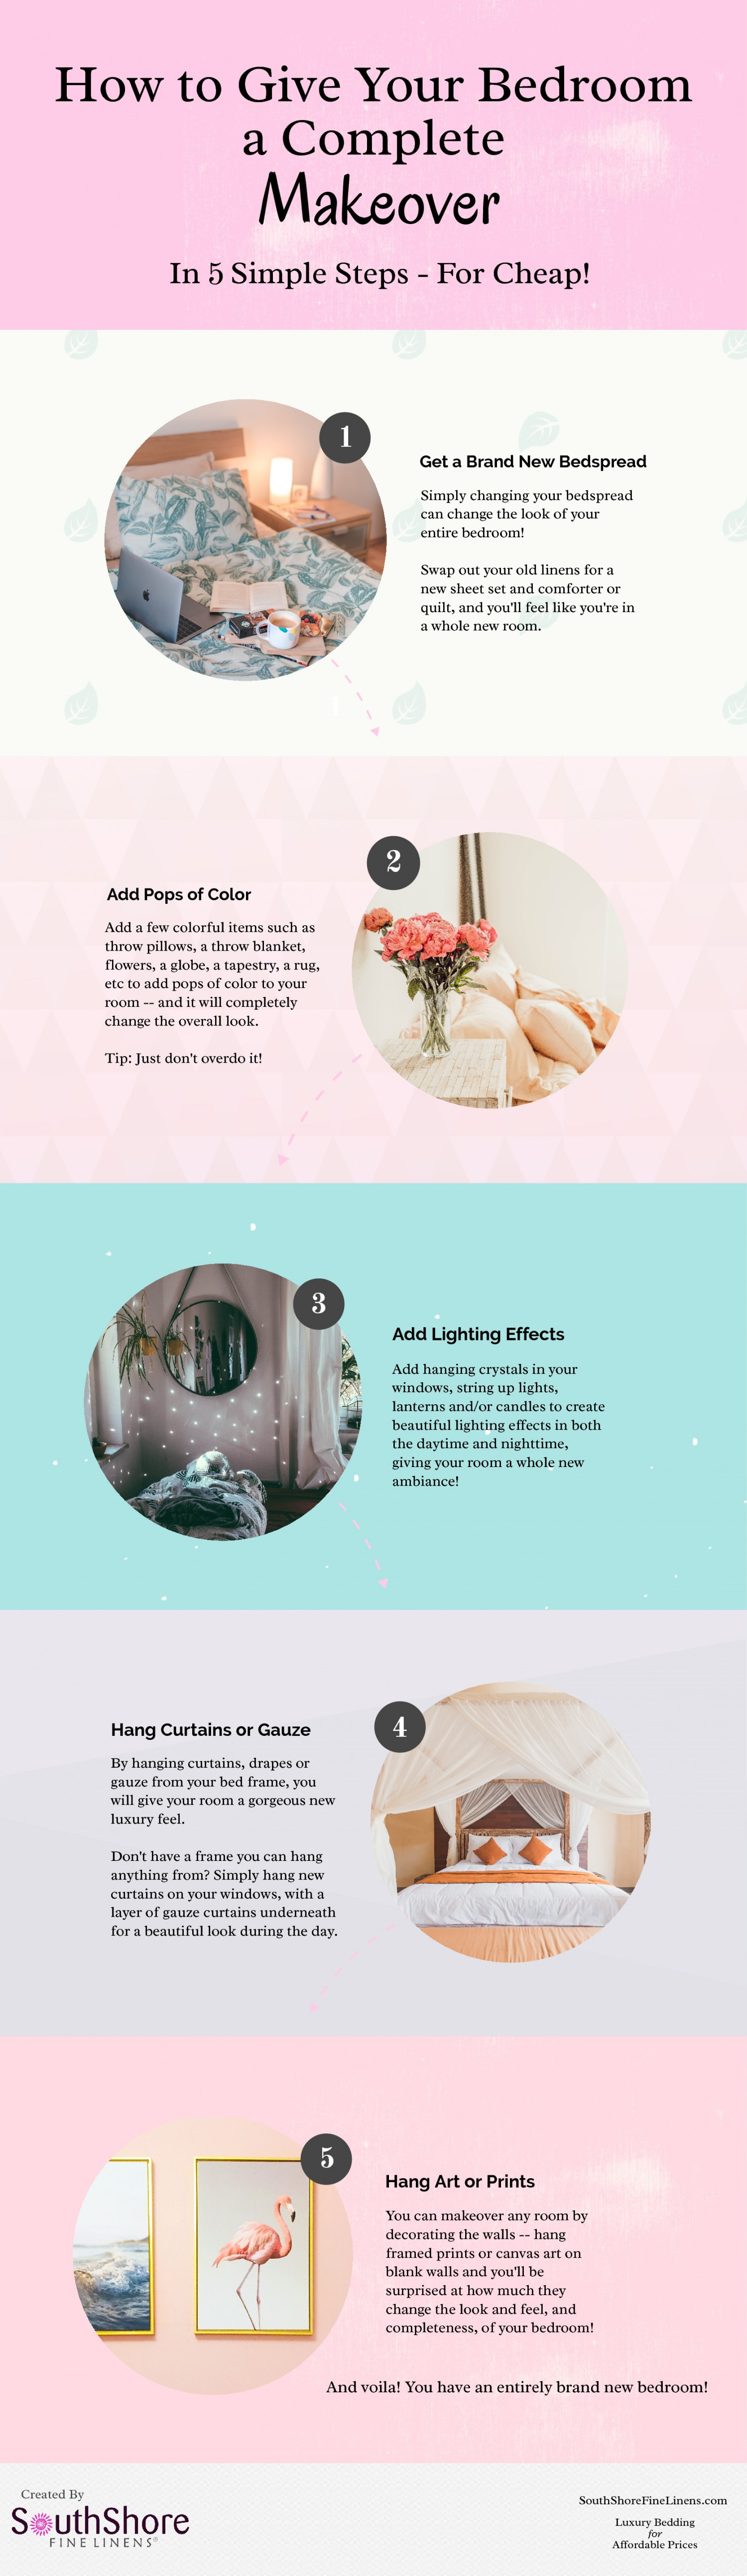 How to Give Your Bedroom a Complete Makeover Infographic